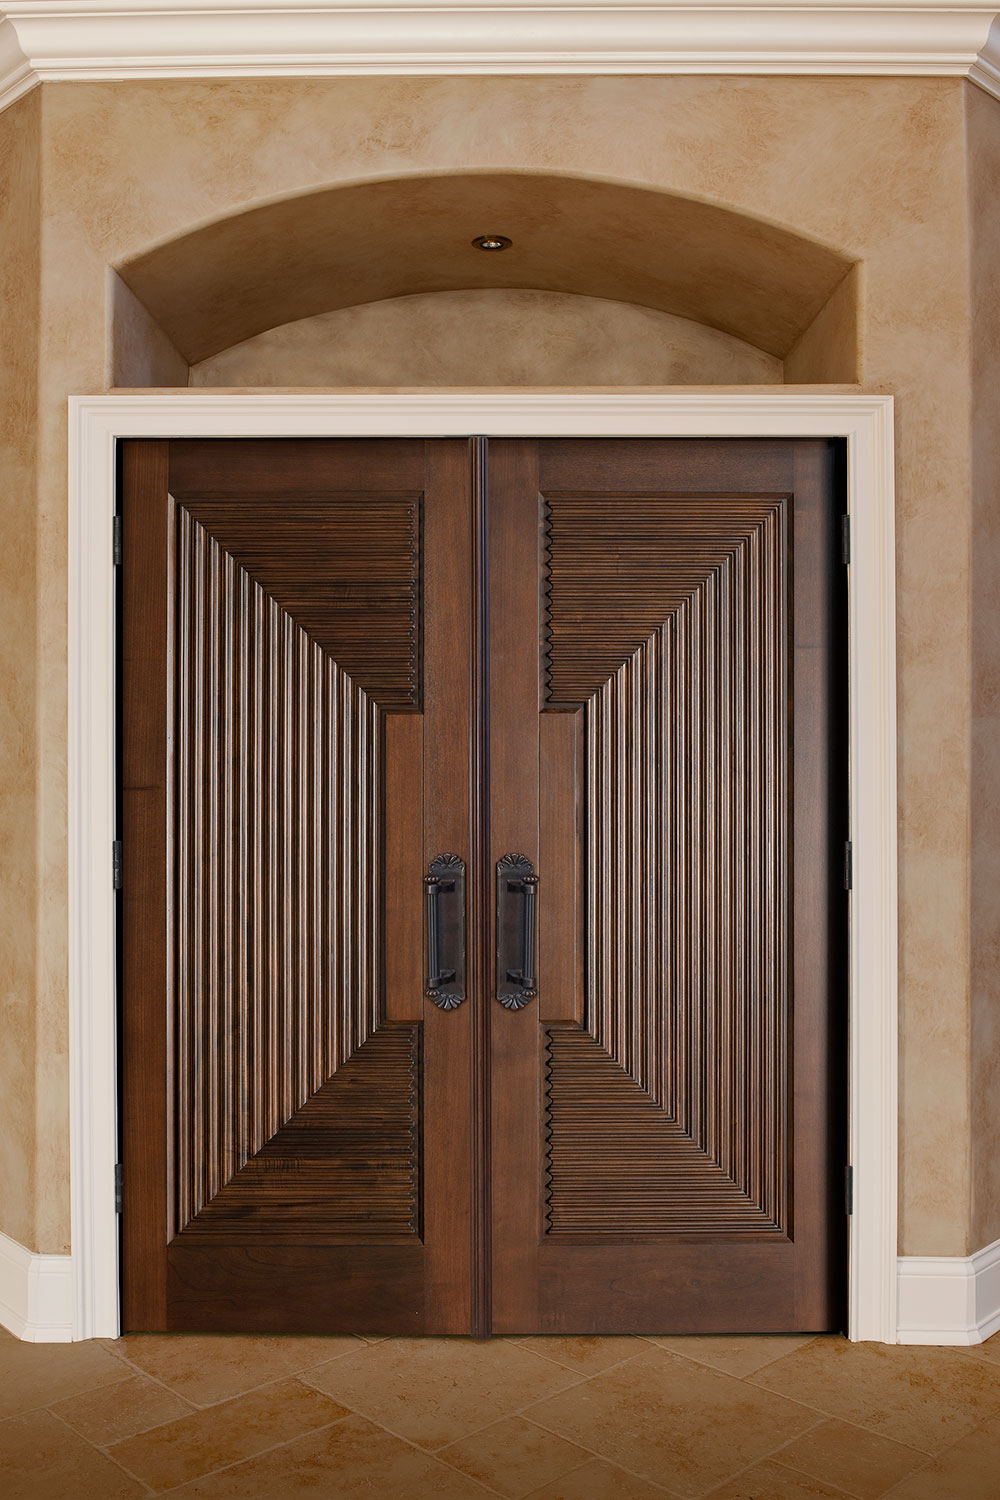 Wood Interior Door - Double